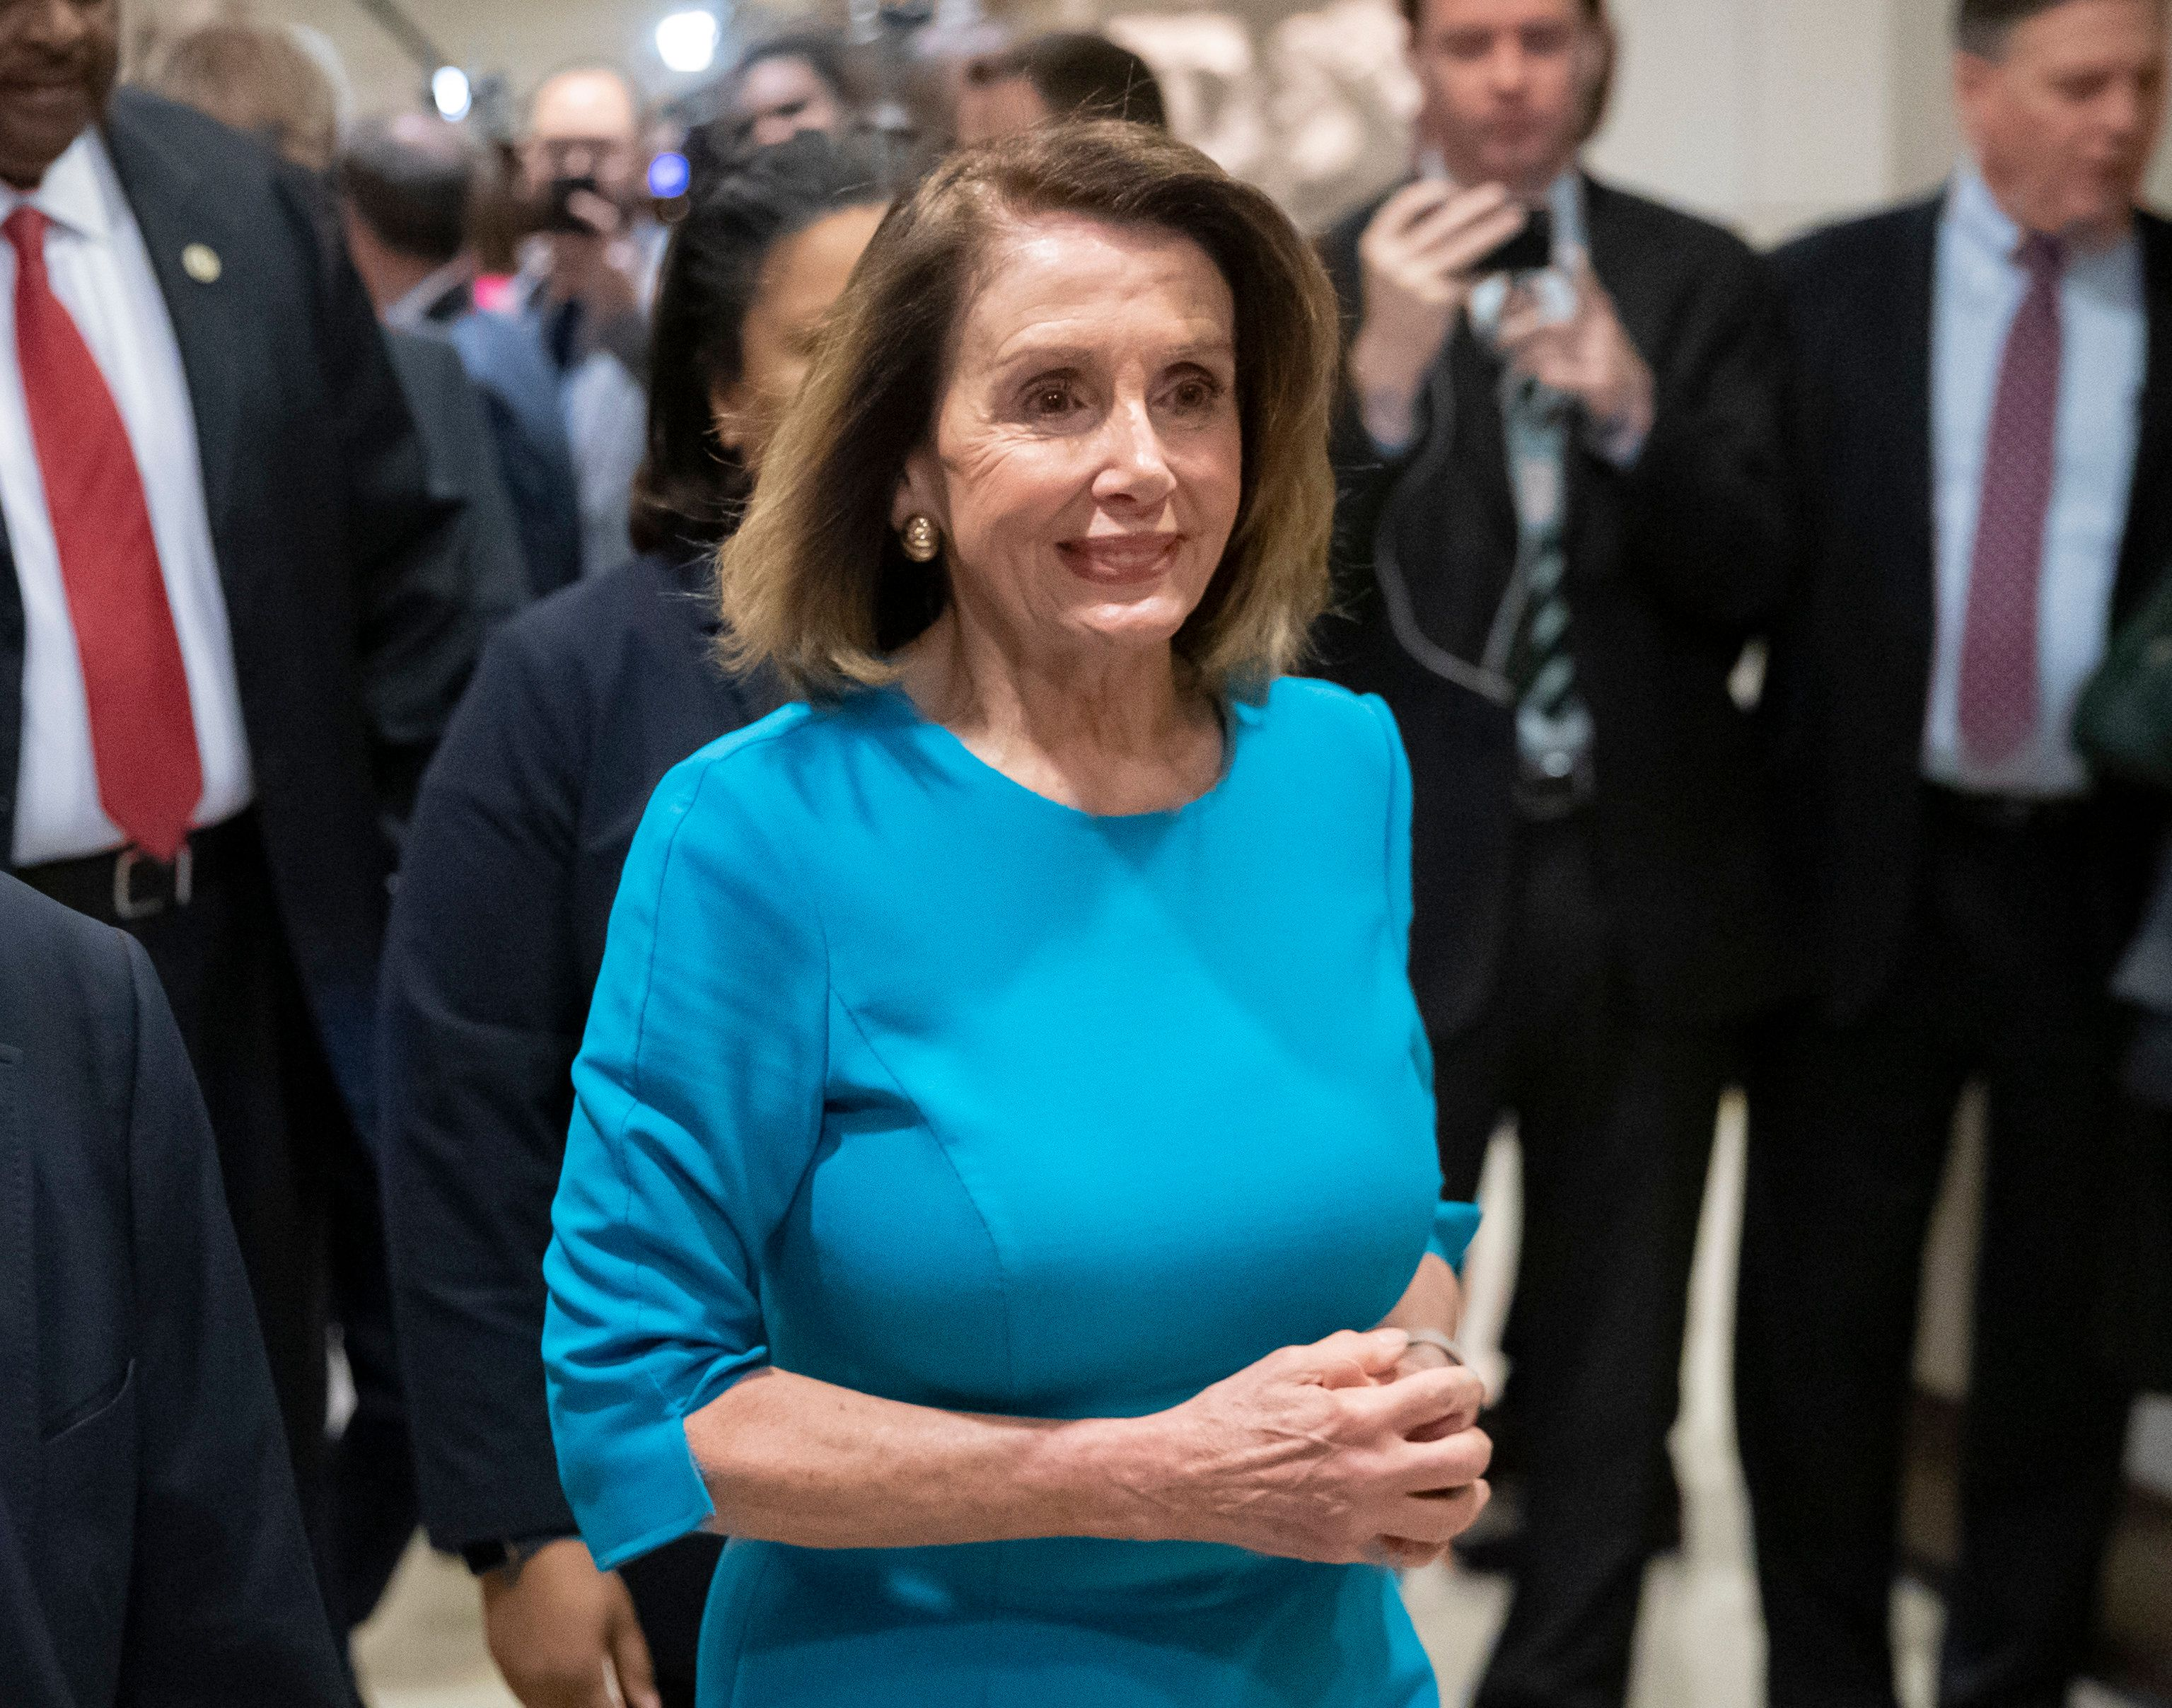 Nancy Pelosi nominated by Democrats to be next House speaker